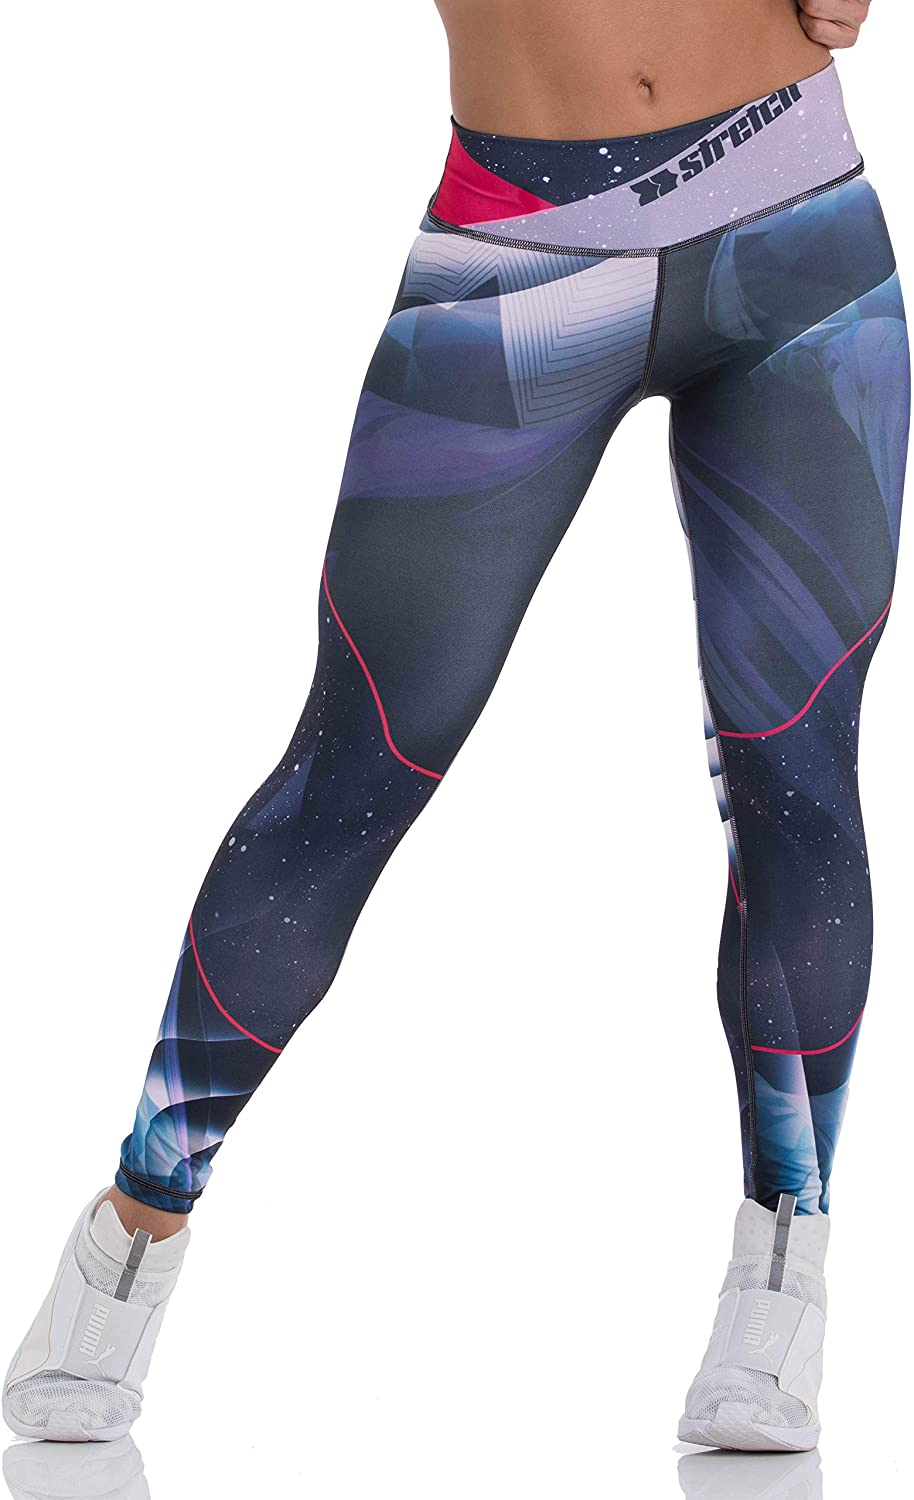 Compression Leggings, Butt-Lifting, Strong & Durable, Workout & Training Sportswear, by Sport Bottoms